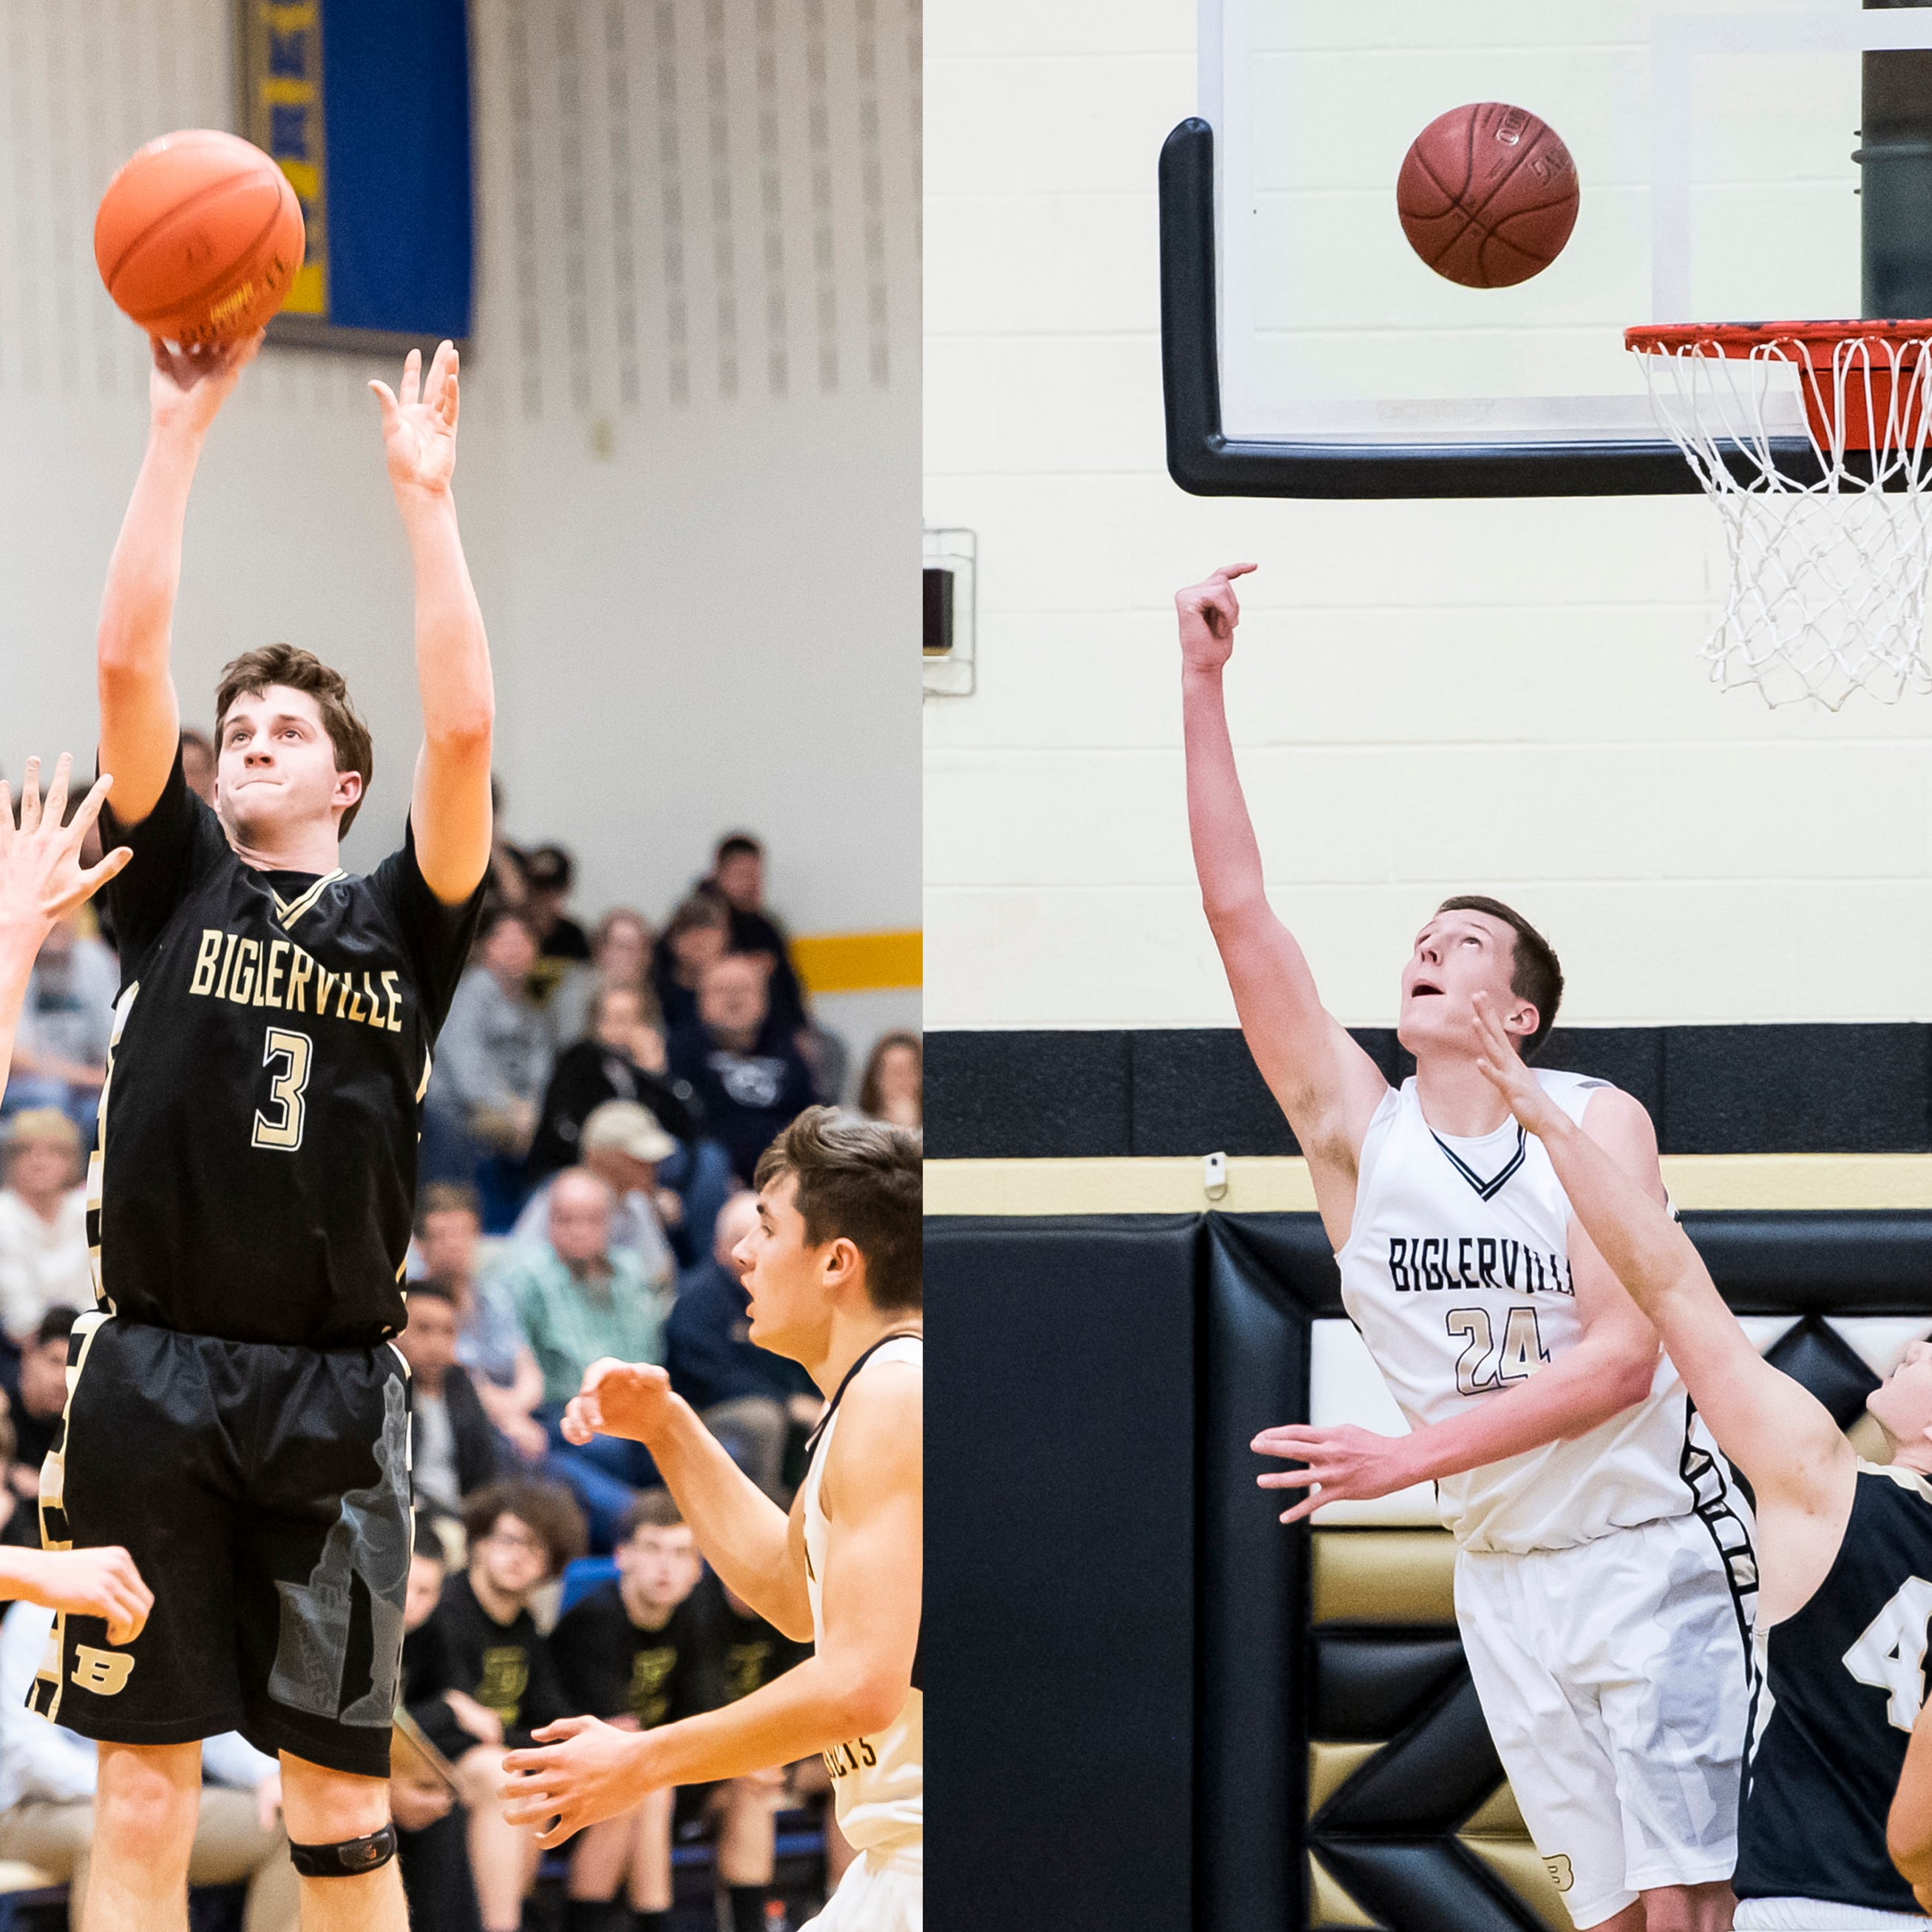 Playing together since third grade, Biglerville hoops duo notches scoring feat